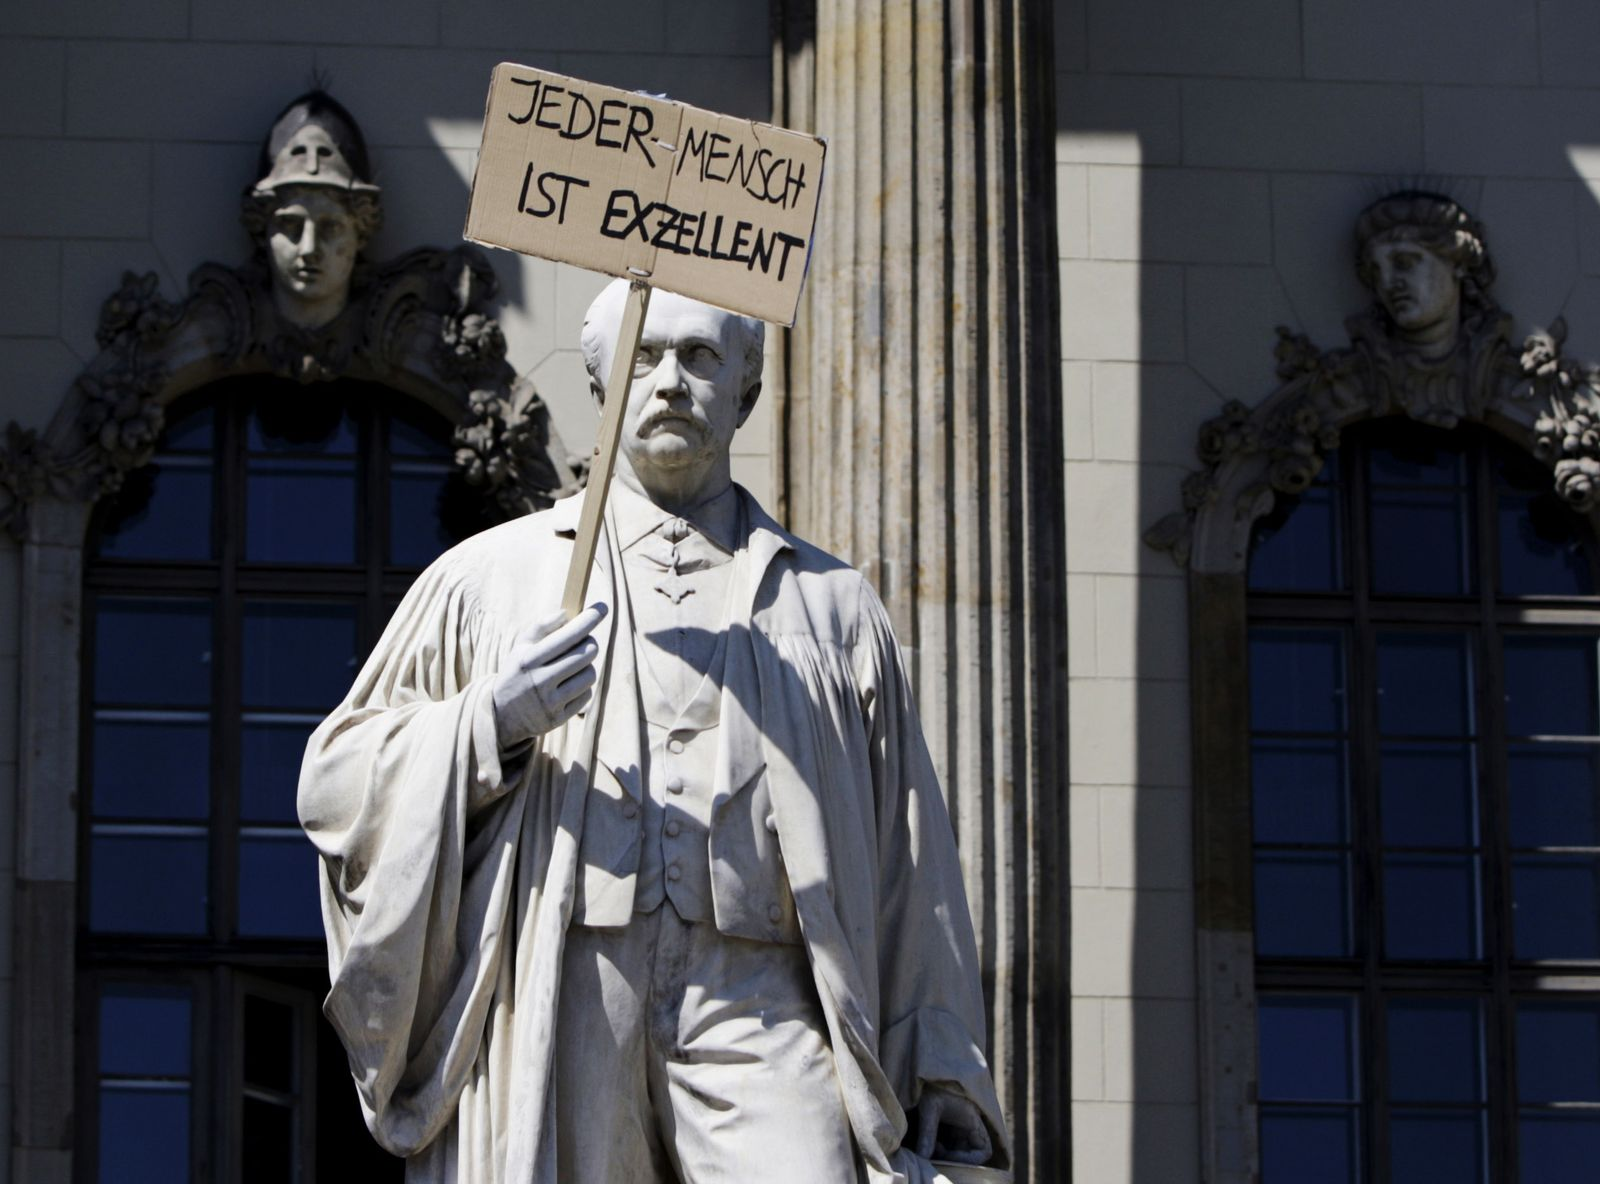 People hold banners in front of the Humbold University during a protest during protest by pupils and students in Berlin